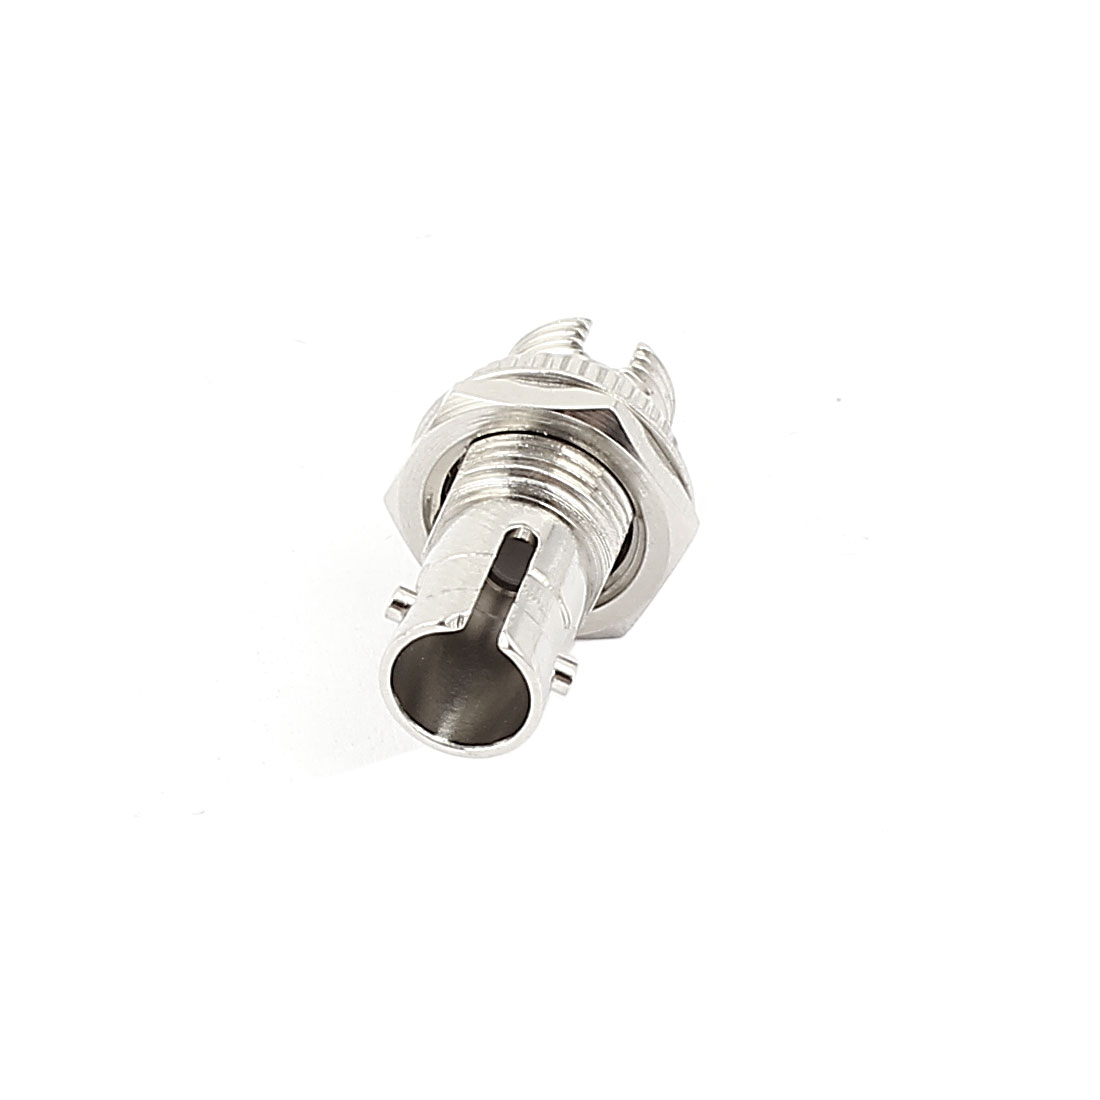 SM/MM FC-ST Flange Connectors Fibre Couplers Optical Fiber Adapters